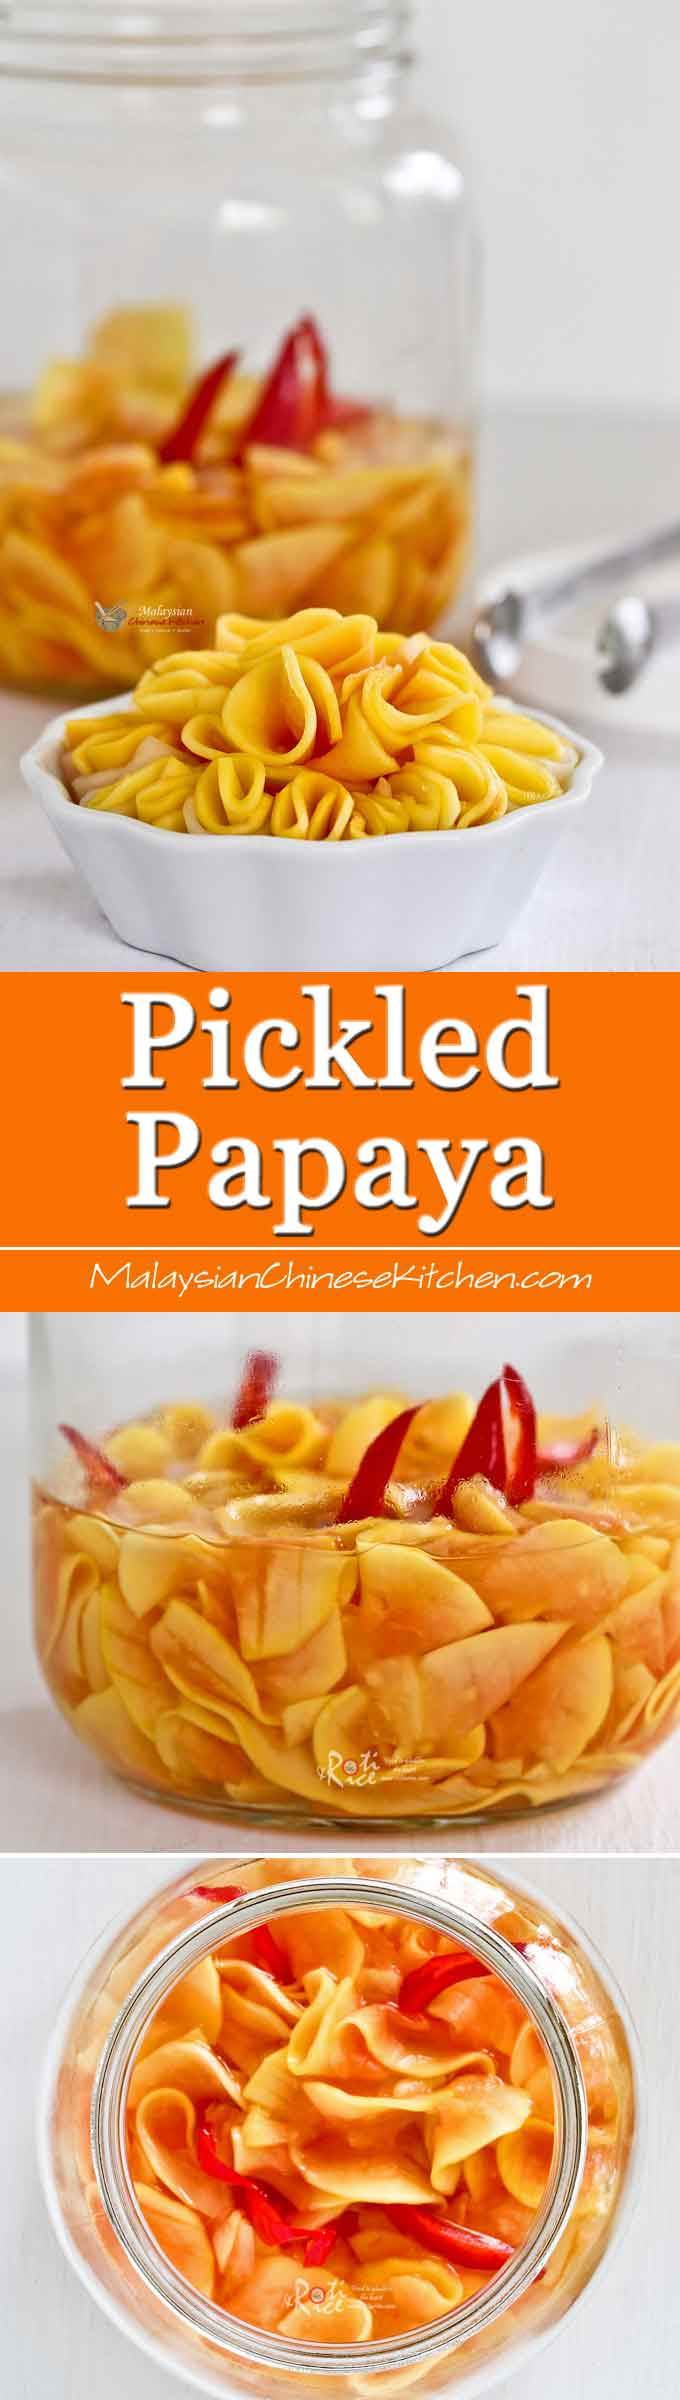 This Malaysian style Pickled Papaya is usually eaten as a snack or appetizer. It is crunchy, tangy, slightly spicy, and deliciously addictive. A must-try! | MalaysianChineseKitchen.com